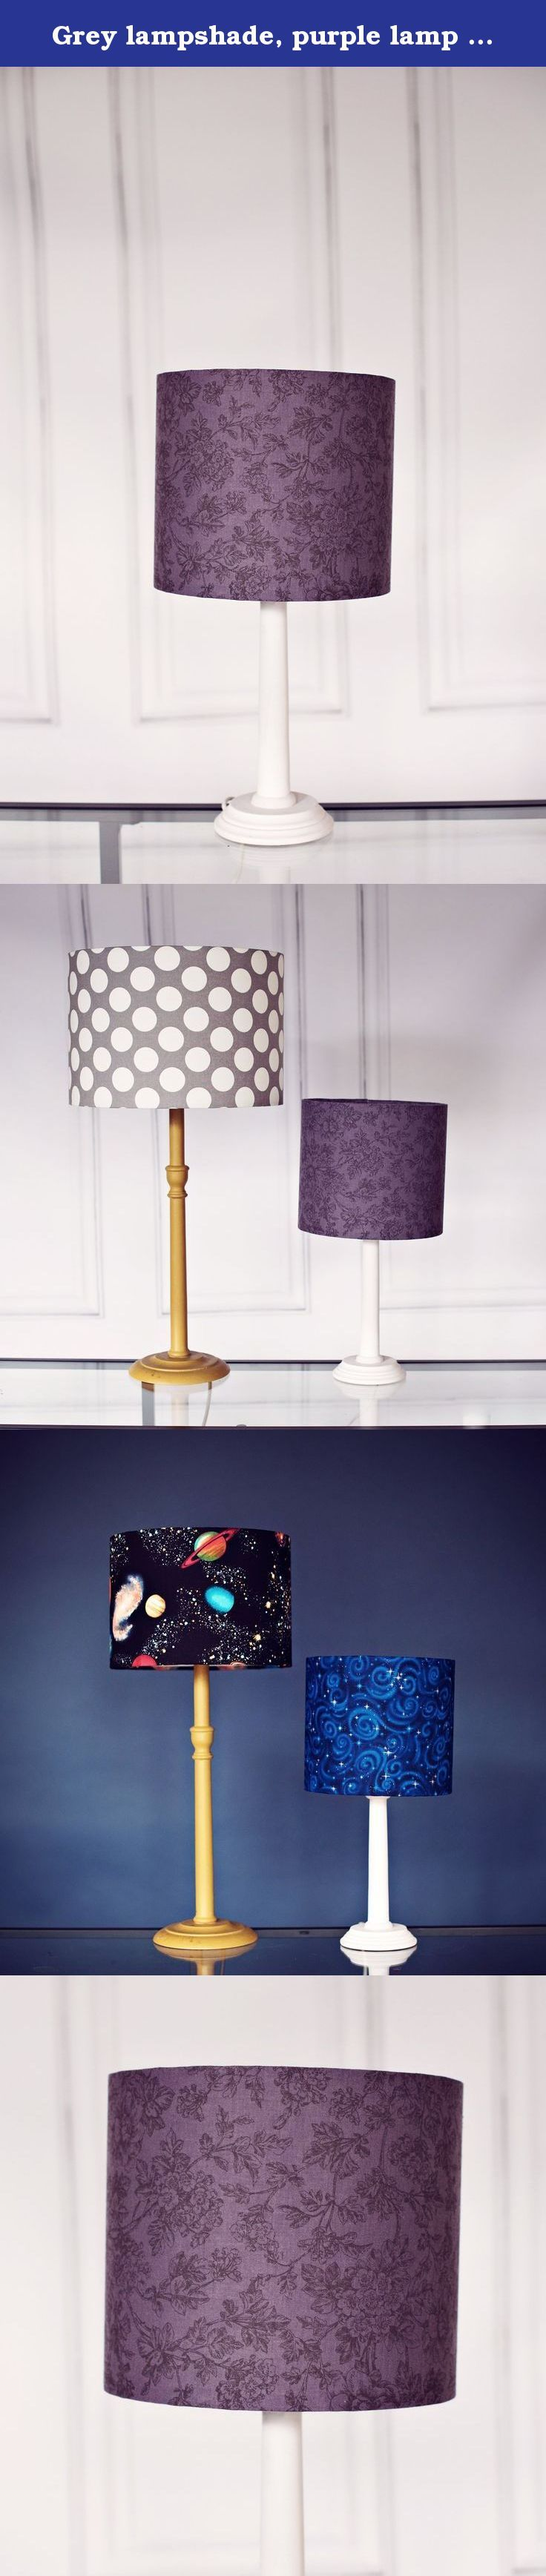 Grey lampshade, purple lamp shade, floral lampshade, drum lampshade, fabric lampshade, ceiling lampshade, grey floral lamp shade, gray lamp. The featured shade has a beautiful Grey/purple fabric with a grey floral pattern. This lampshade would be a wonderful addition to any room. The lamp shade is a beautiful style which will look complimentary with decor.br /> All of the lampshades are lovingly handmade in my studio in Manchester, UK. The lampshade pictured is 30cm / 12 inches diameter....